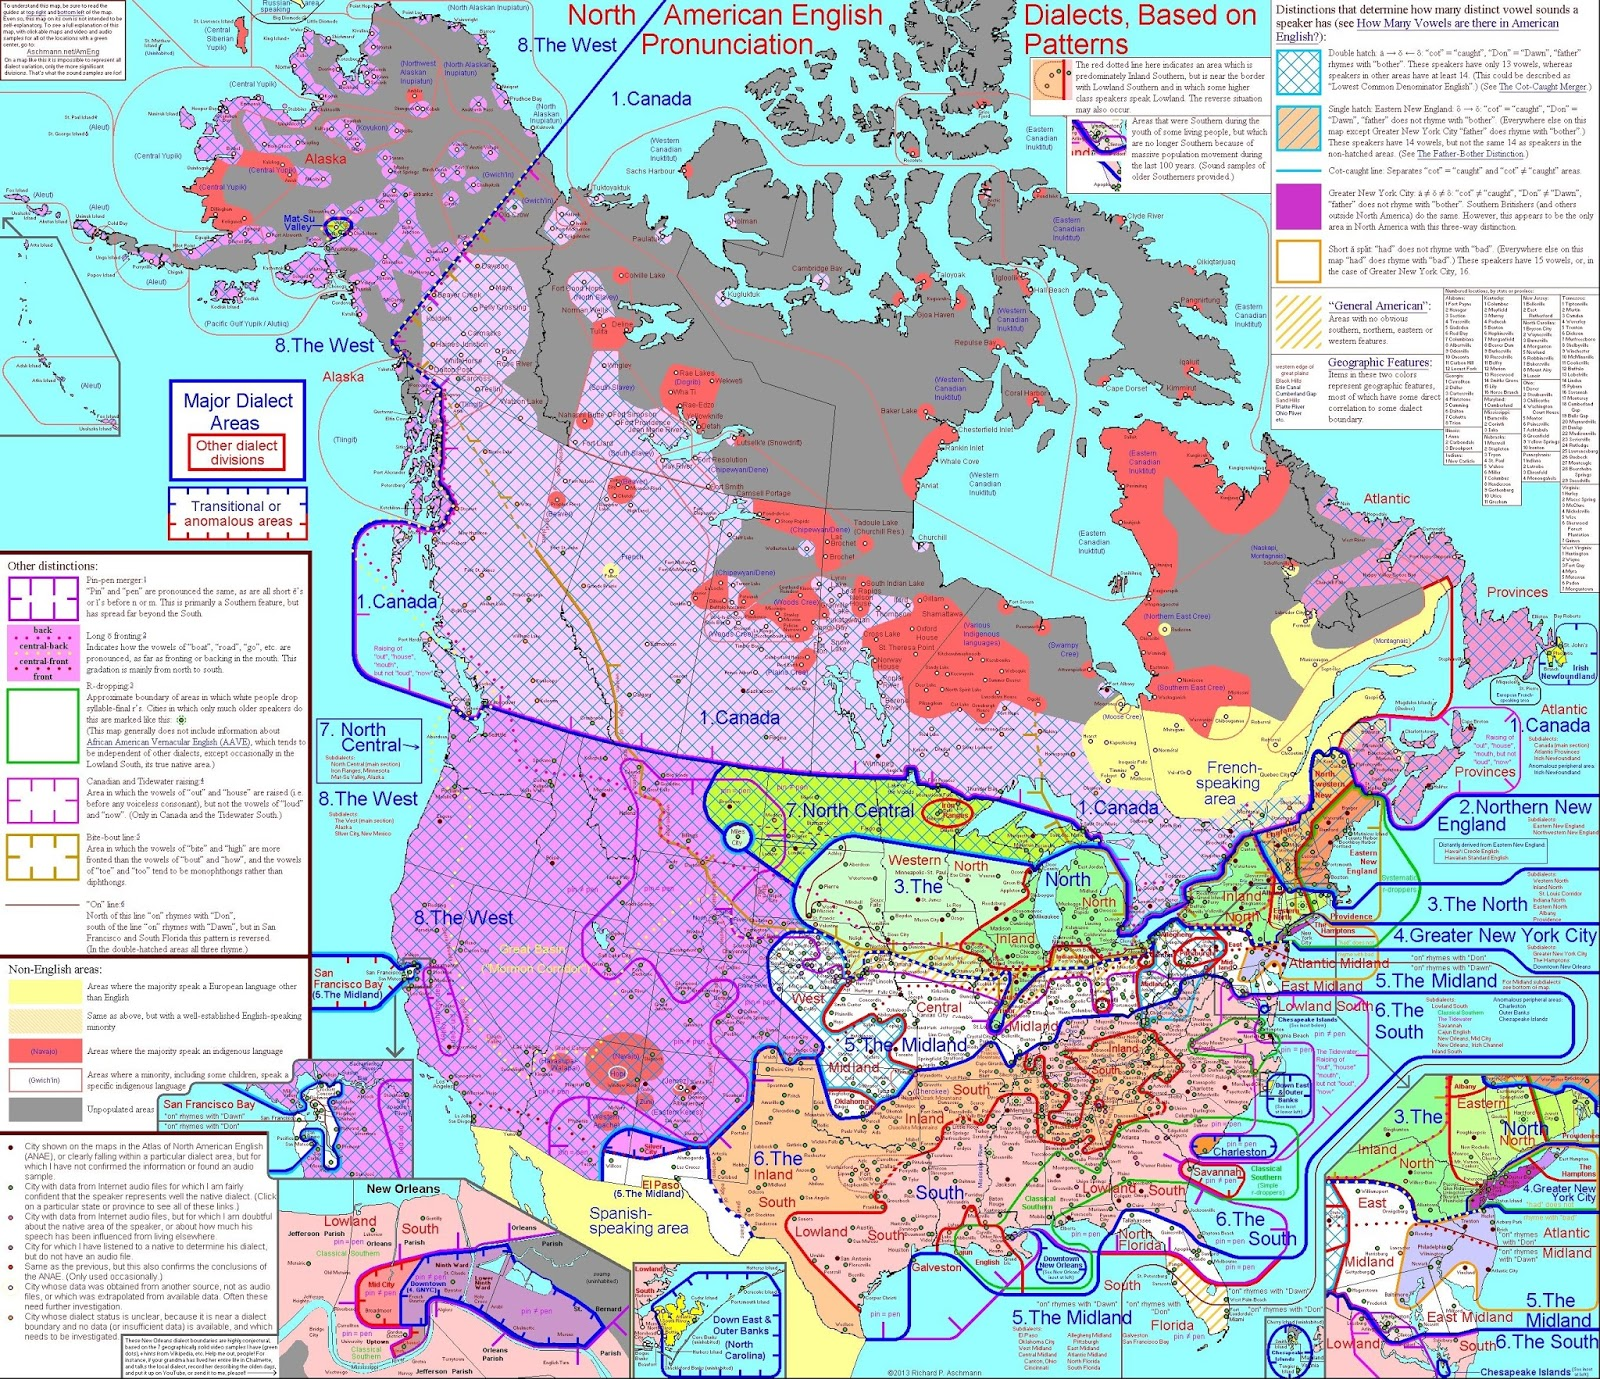 A dialect map of the English language in North America